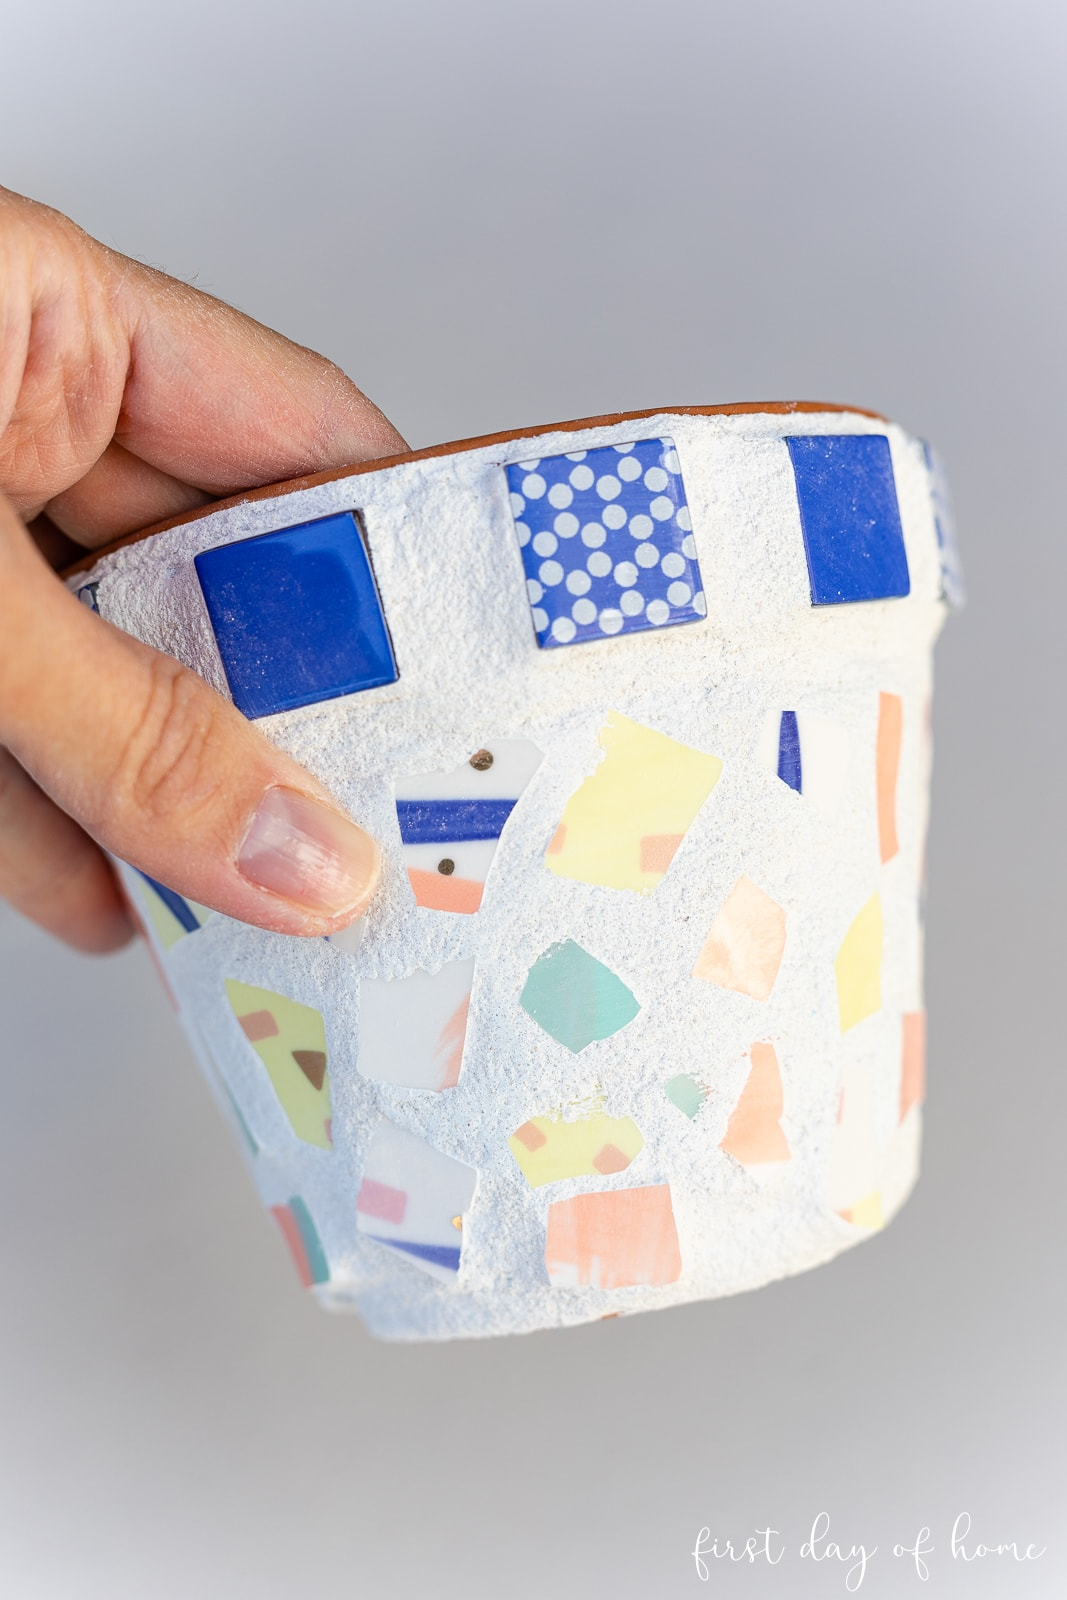 Mosaic flower pot after removing excess grout